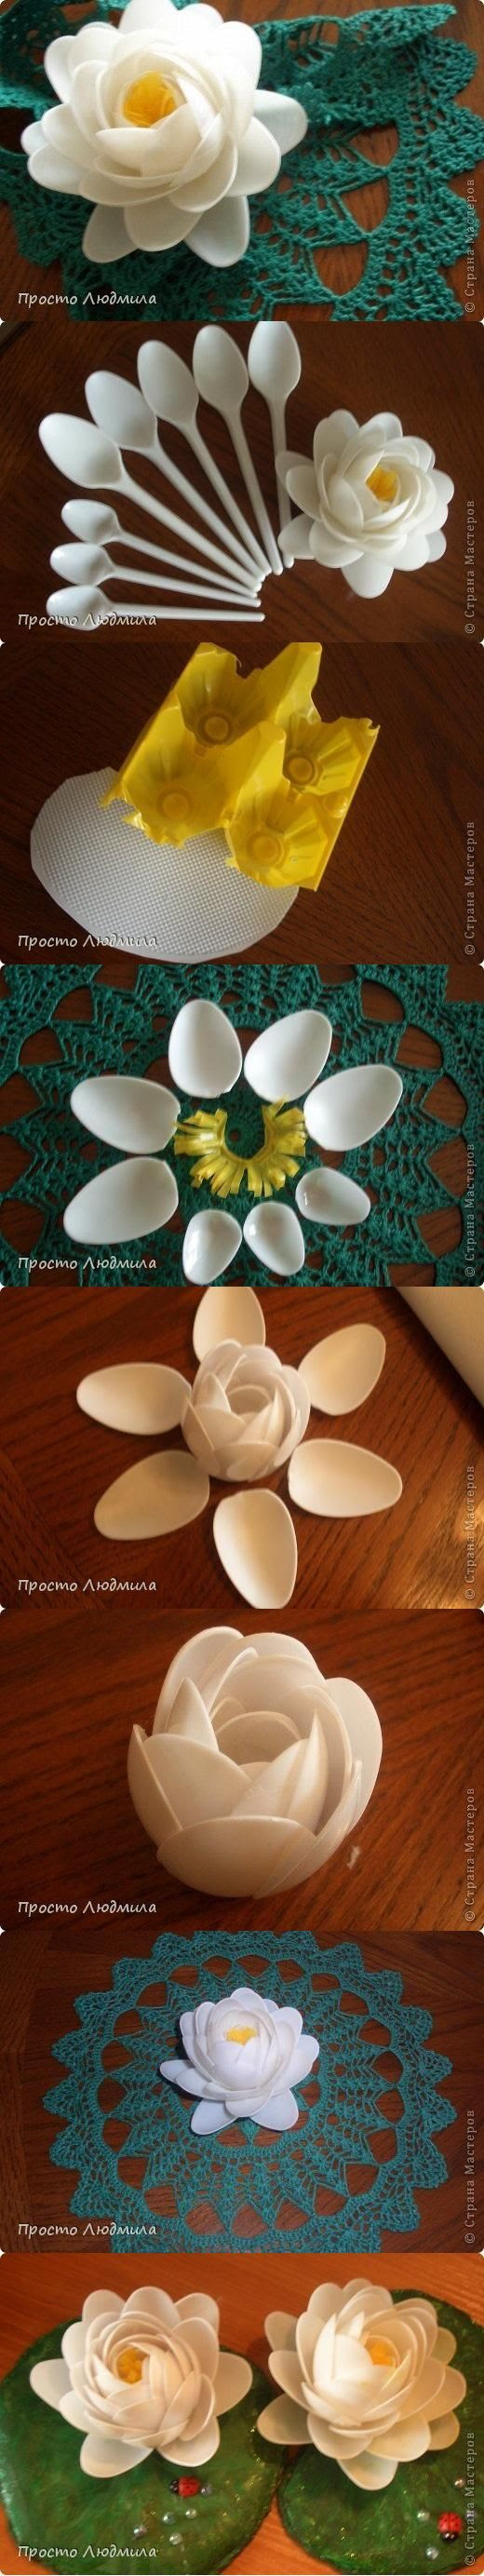 How To Make Water Lily Flowers With Recycled Plastic Spoons